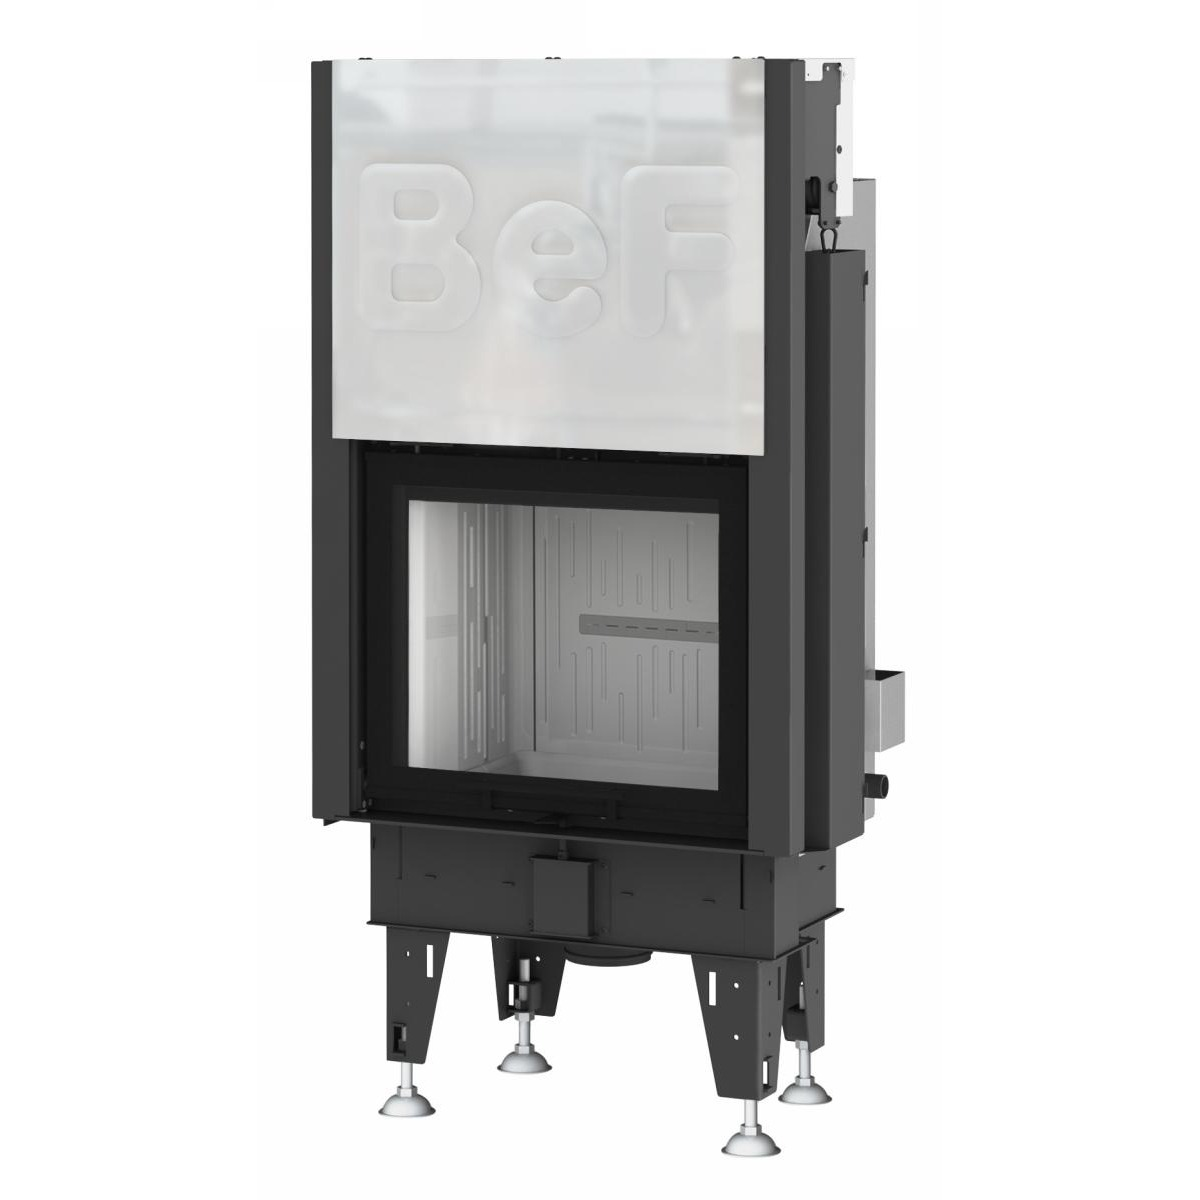 BeF Aquatic WH V 65 boiler fireplace insert